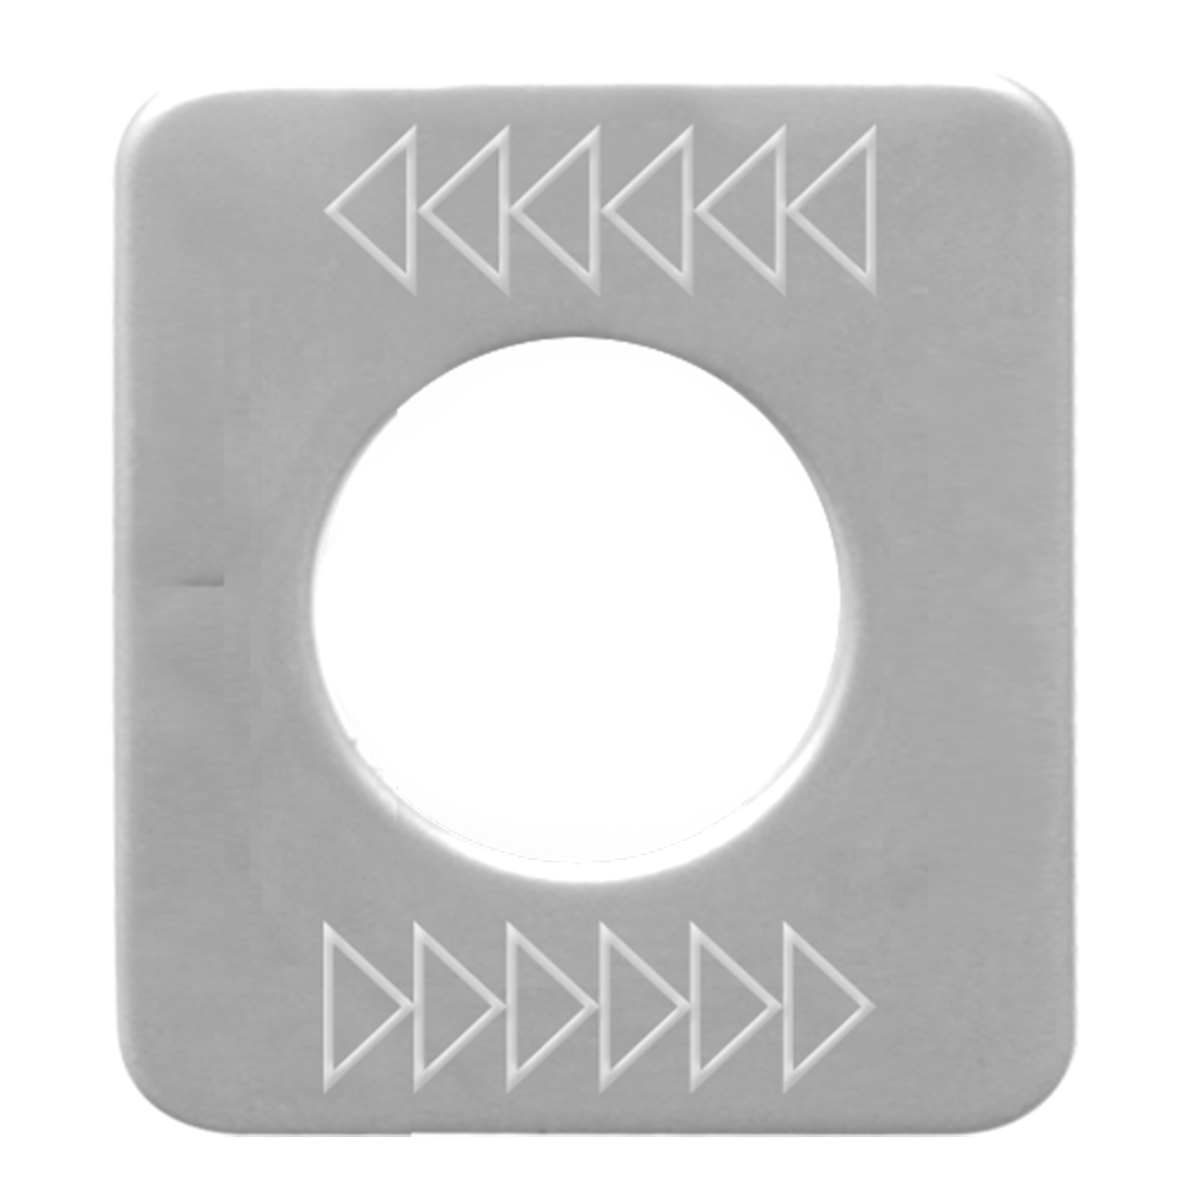 68598 Stainless Steel Left Top Arrow Switch Plate for KW